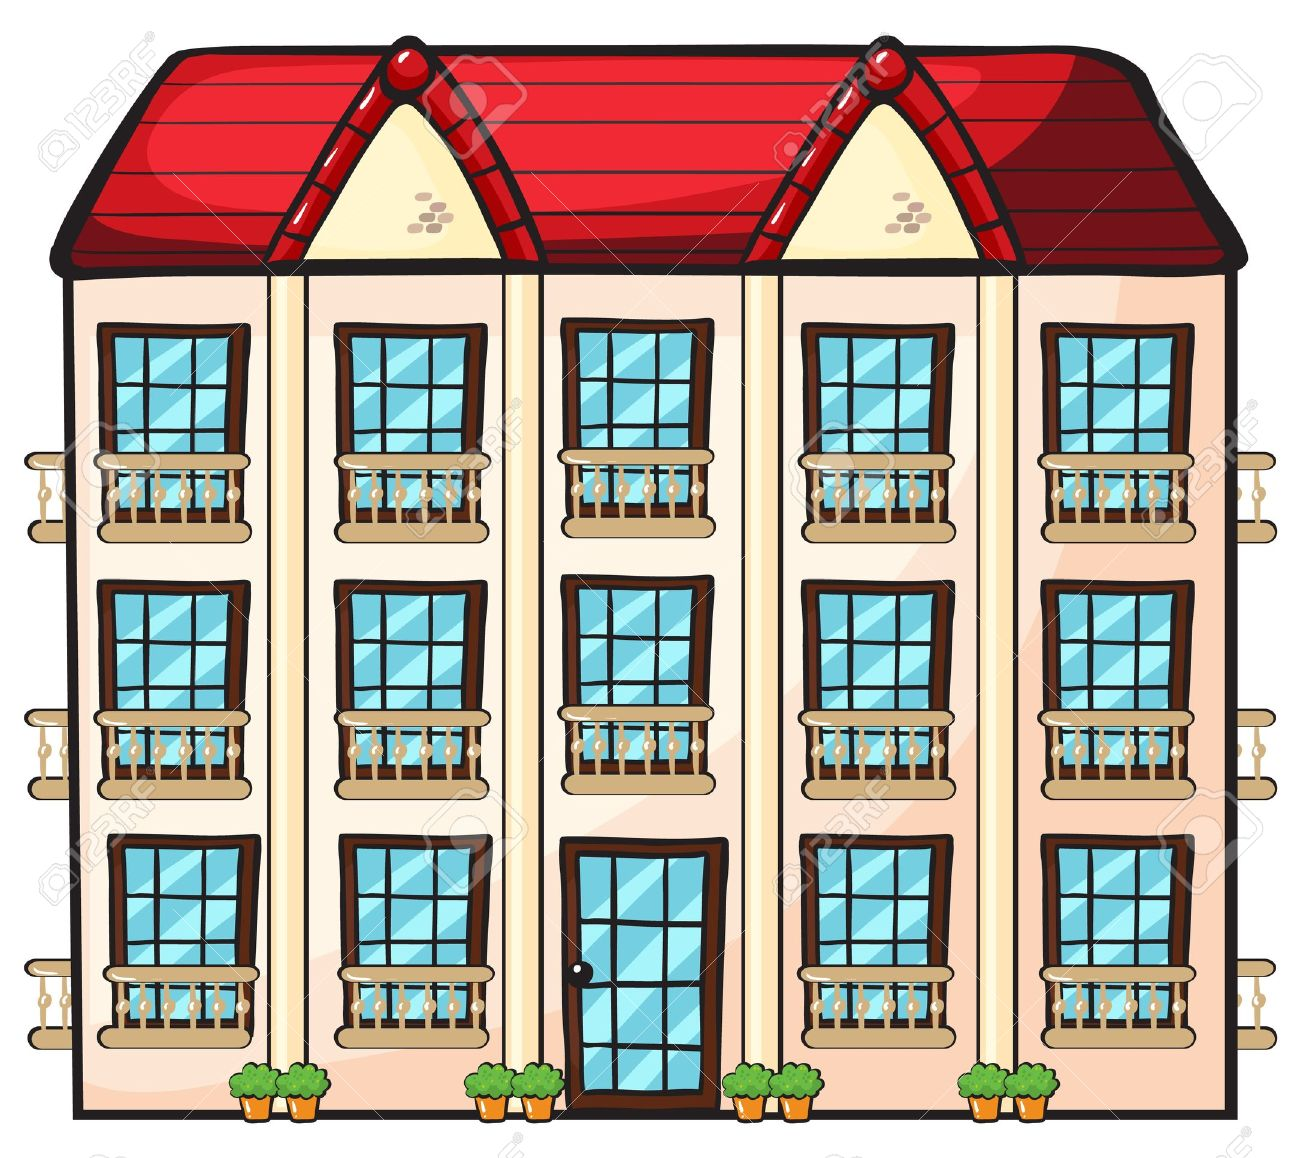 Apartment Illustration Of A Brick Apartment Building Illustration